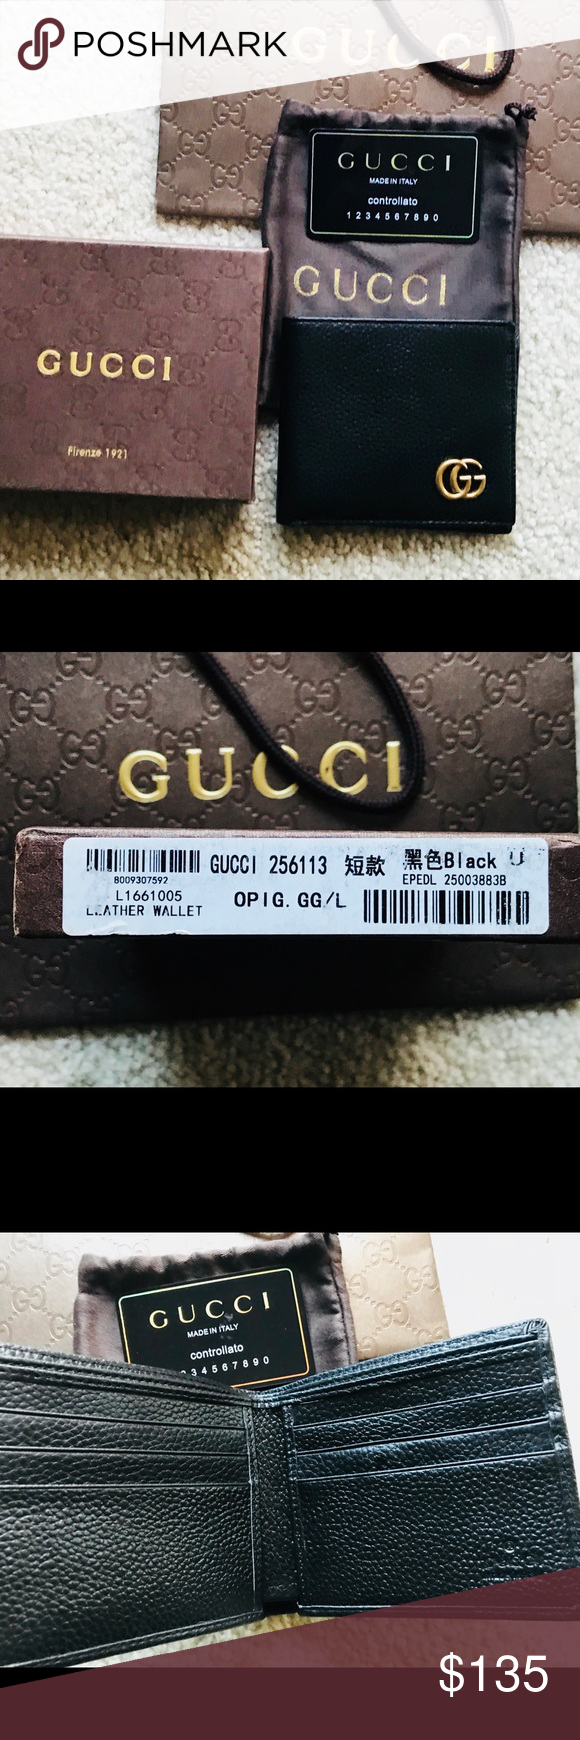 091f4e43f7c Gucci Wallet- Made in Italy Bought it  never used it   brand new with Gucci  box  etc. 100% Authentic so please buy with confidence. Black color Thanks  Gucci ...